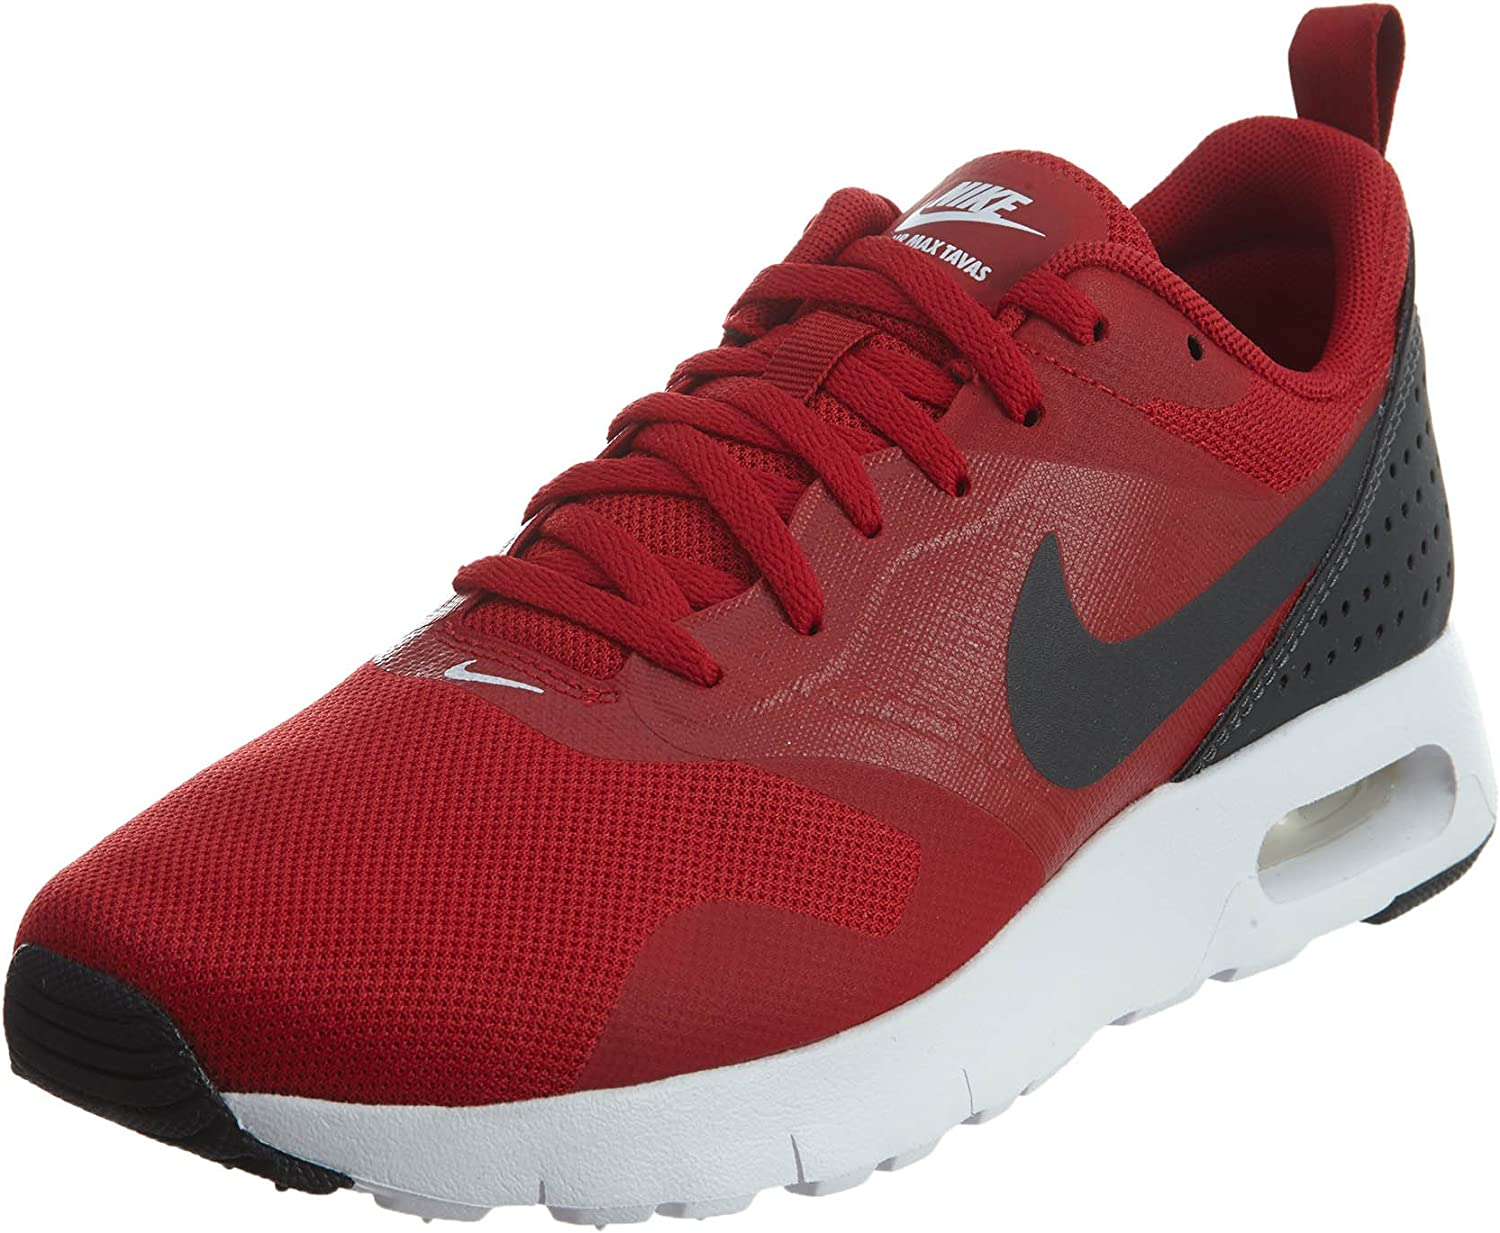 Nike Air Max Tavas (Gs), Trainers for